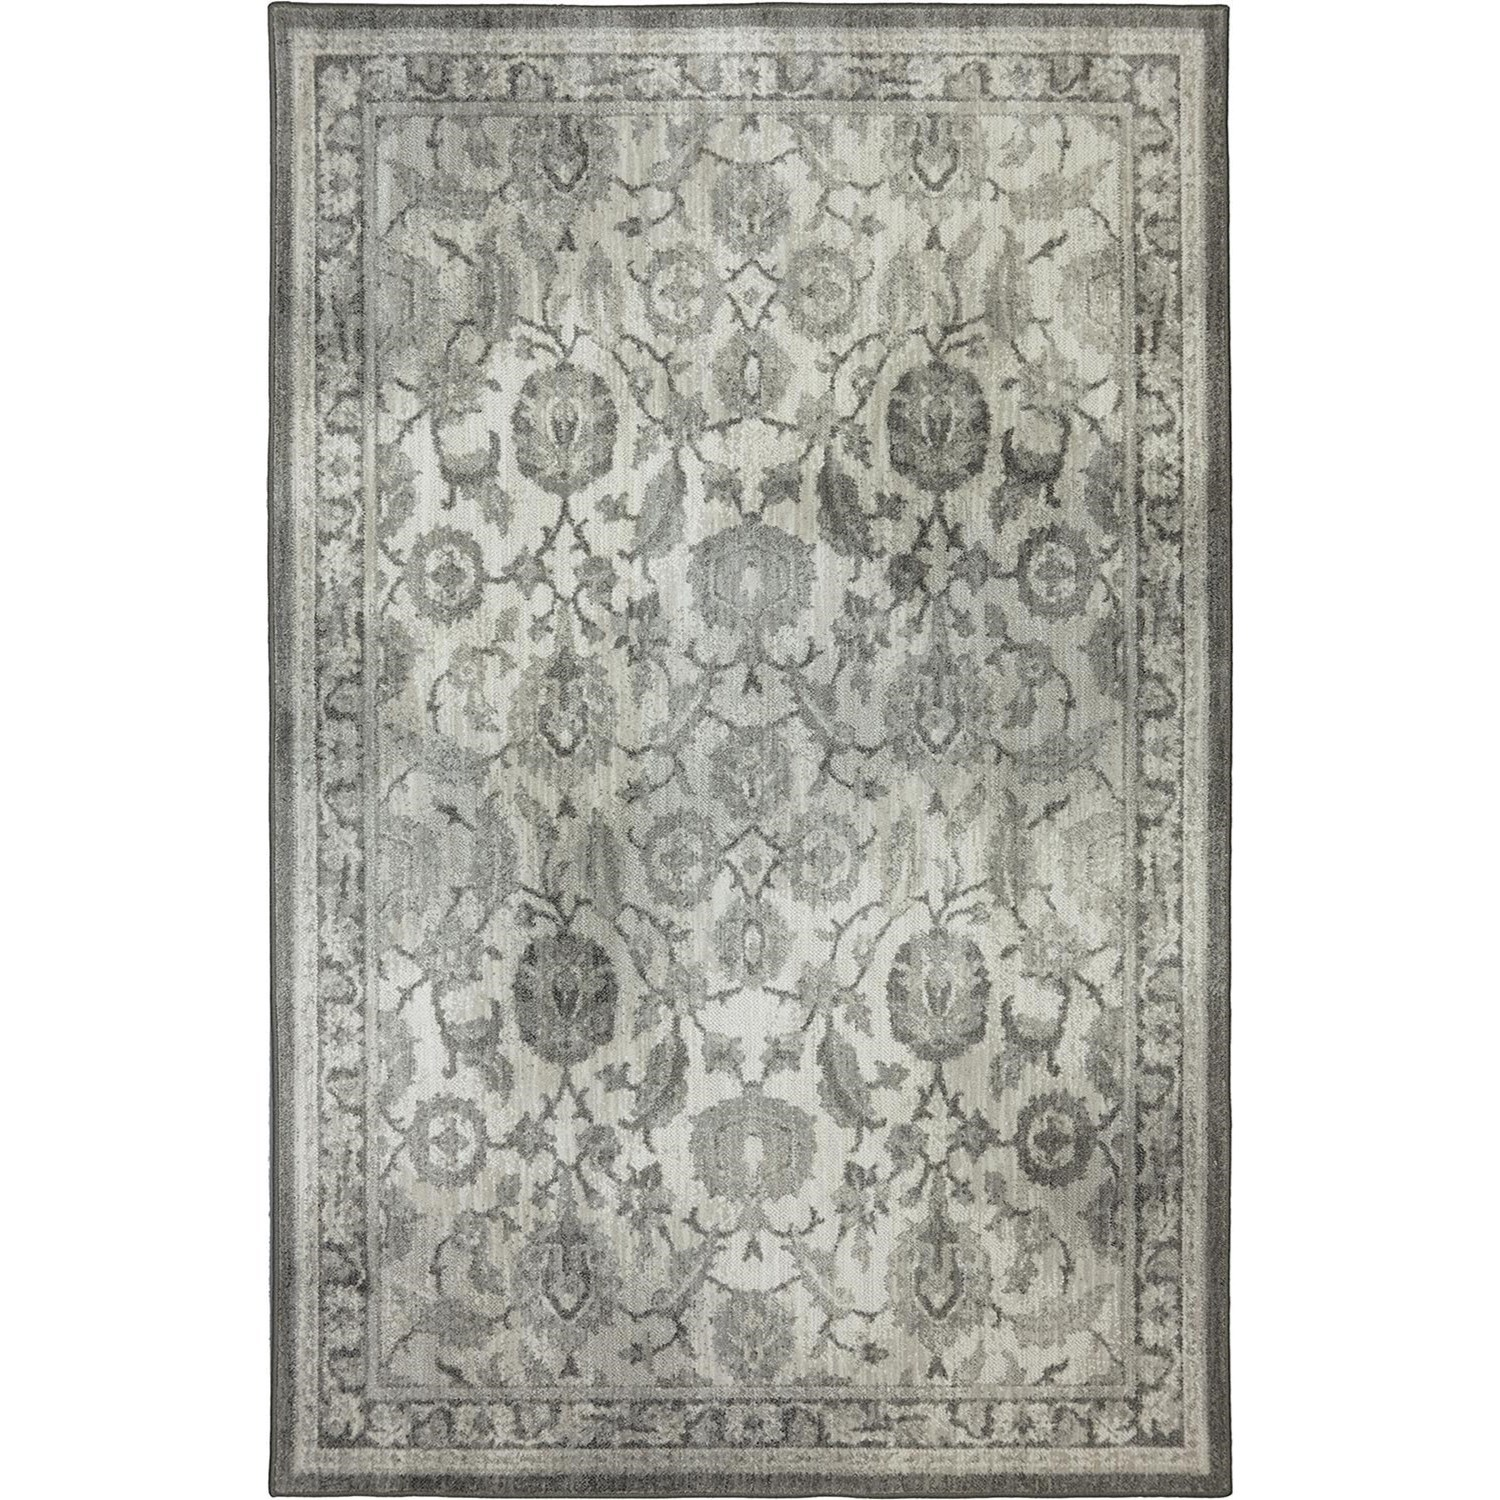 Euphoria 9'6x12'11 New Ross Ash Grey Rug by Karastan Rugs at Alison Craig Home Furnishings